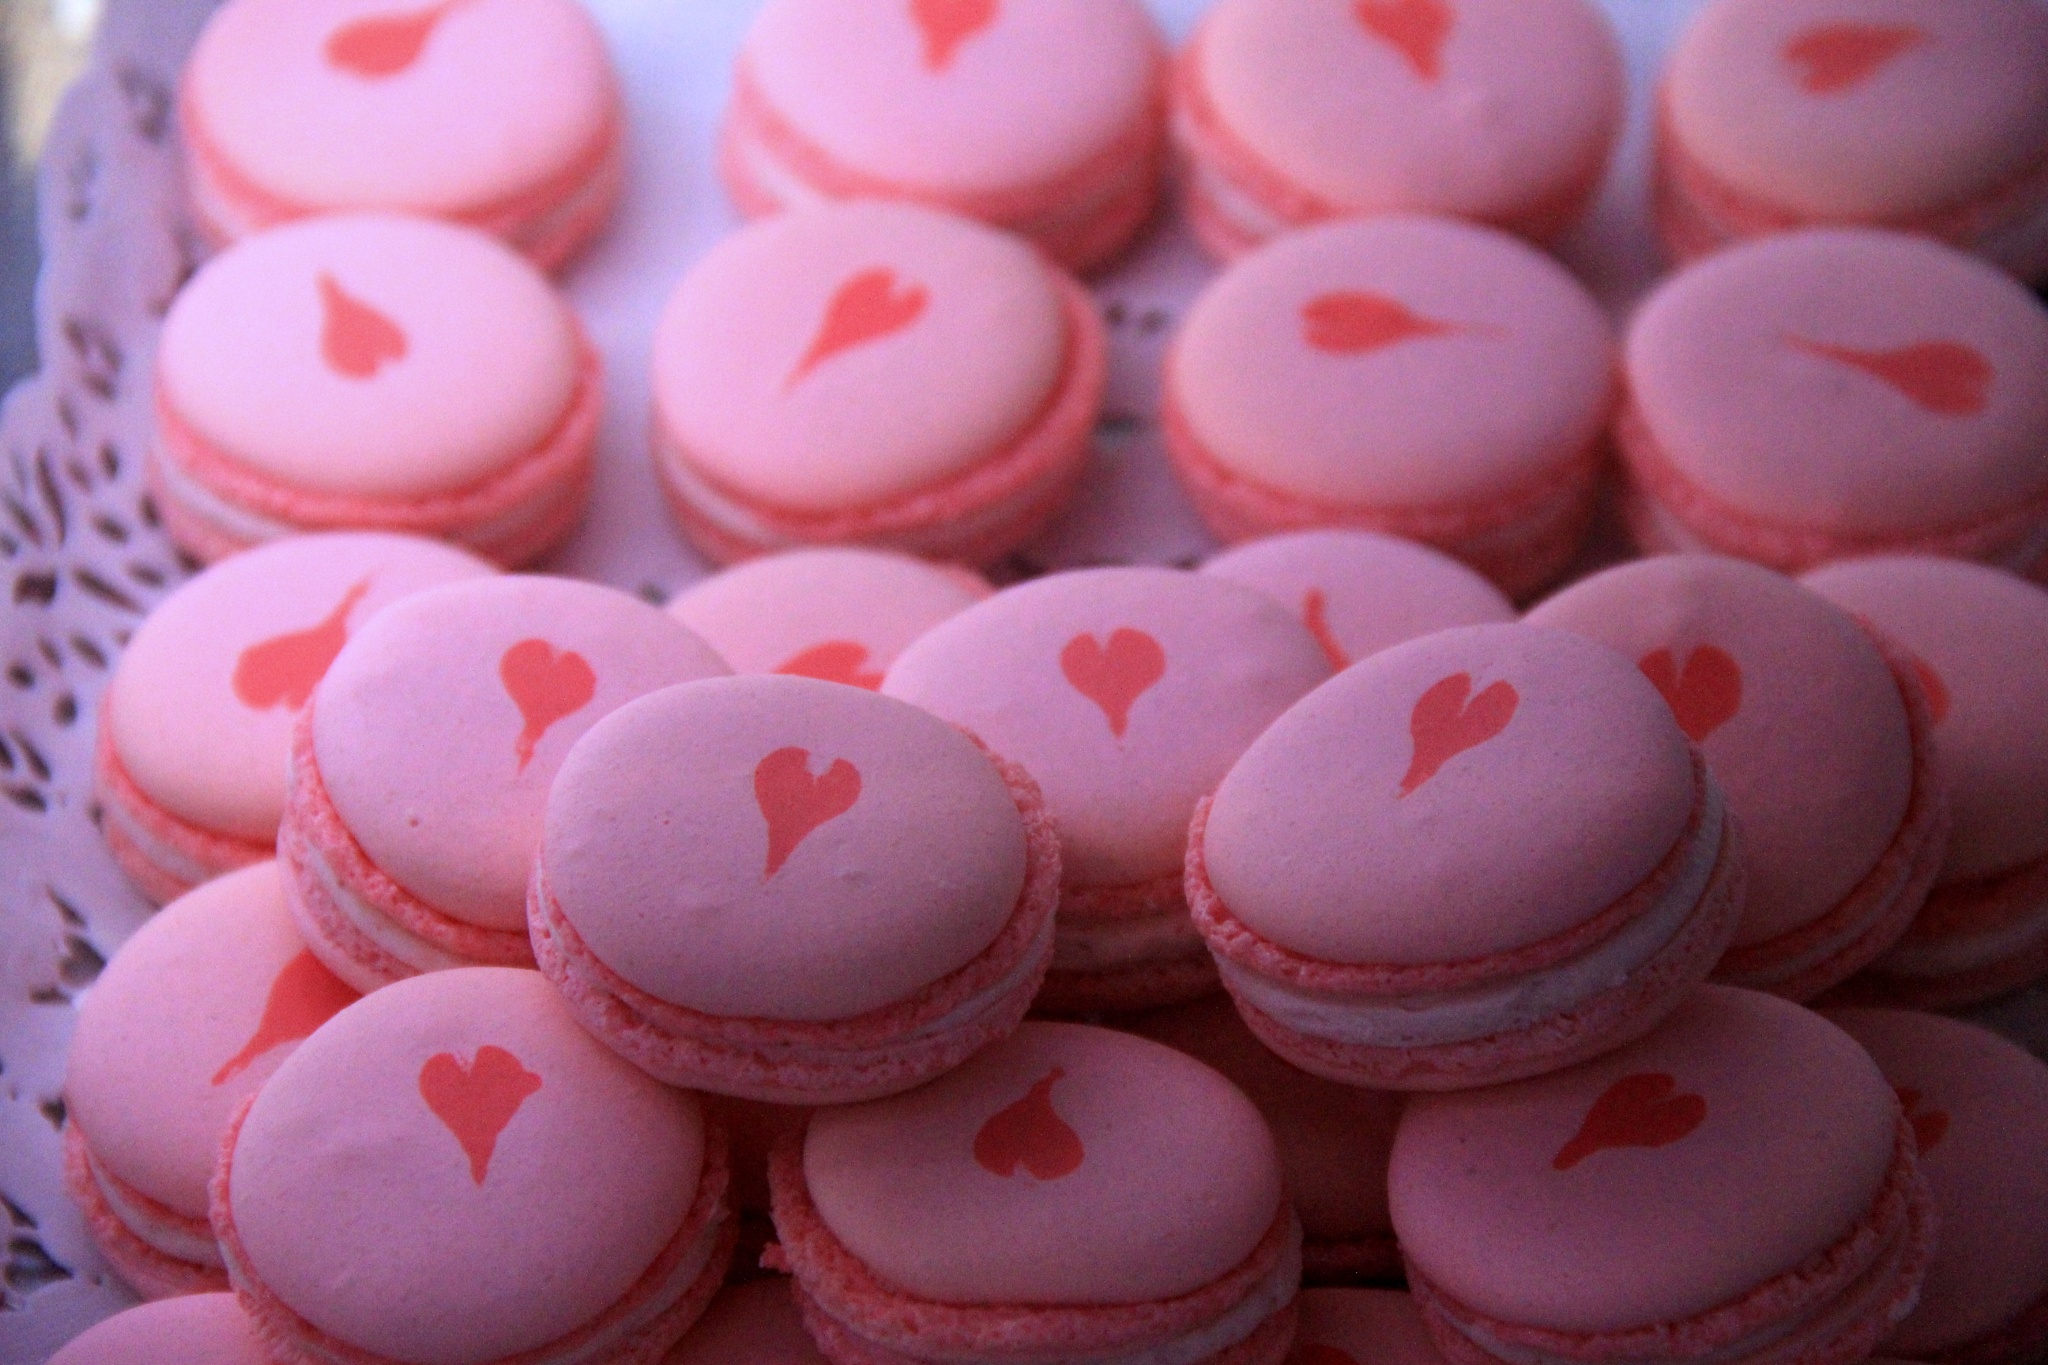 Macaroons for your sweetheart by theresaSt.john